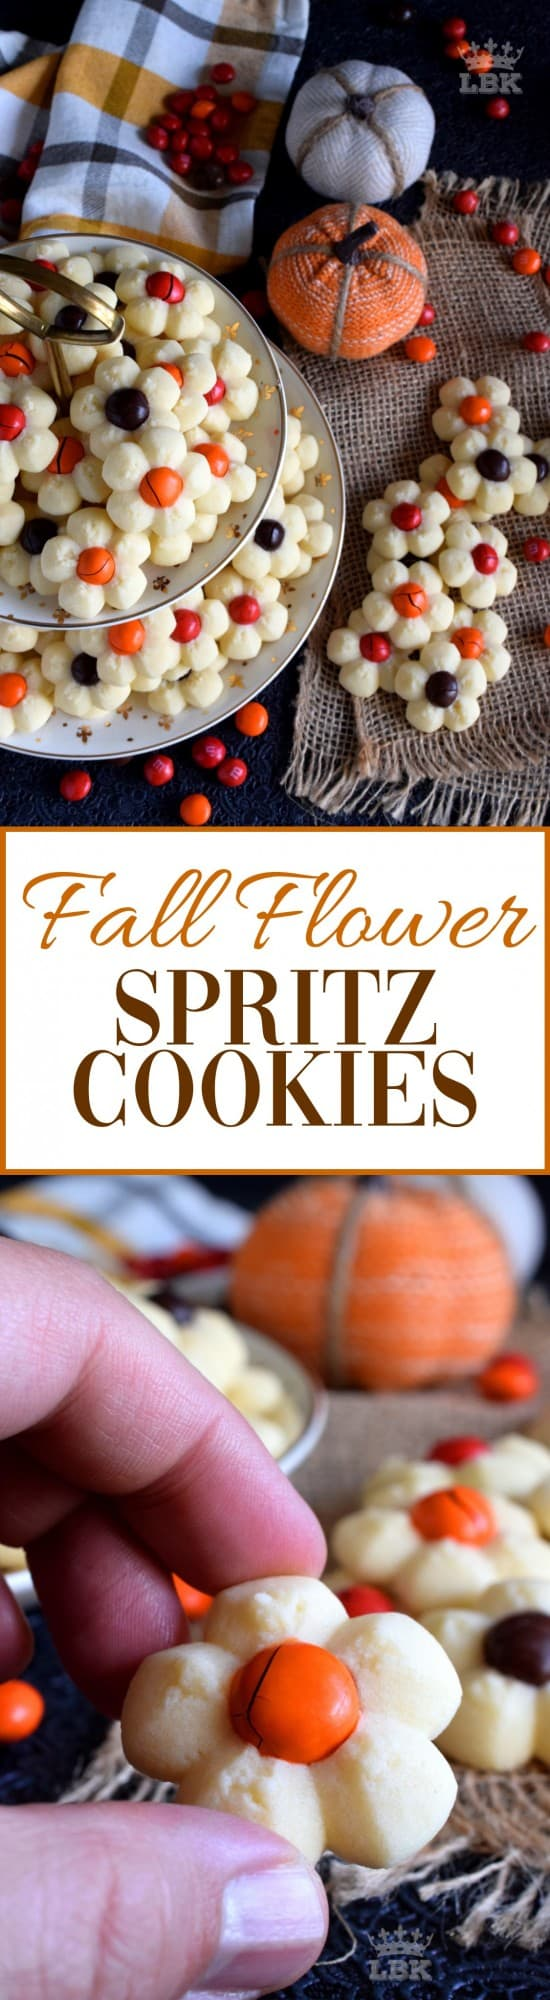 Fall Flower Spritz Cookies - With the help of M&M candy and a cookie press, these spritz cookies look very much like a fall flower arrangement when piled high onto a serving plate.#thanksgiving #fall #cookies #press #spritz #M&Ms